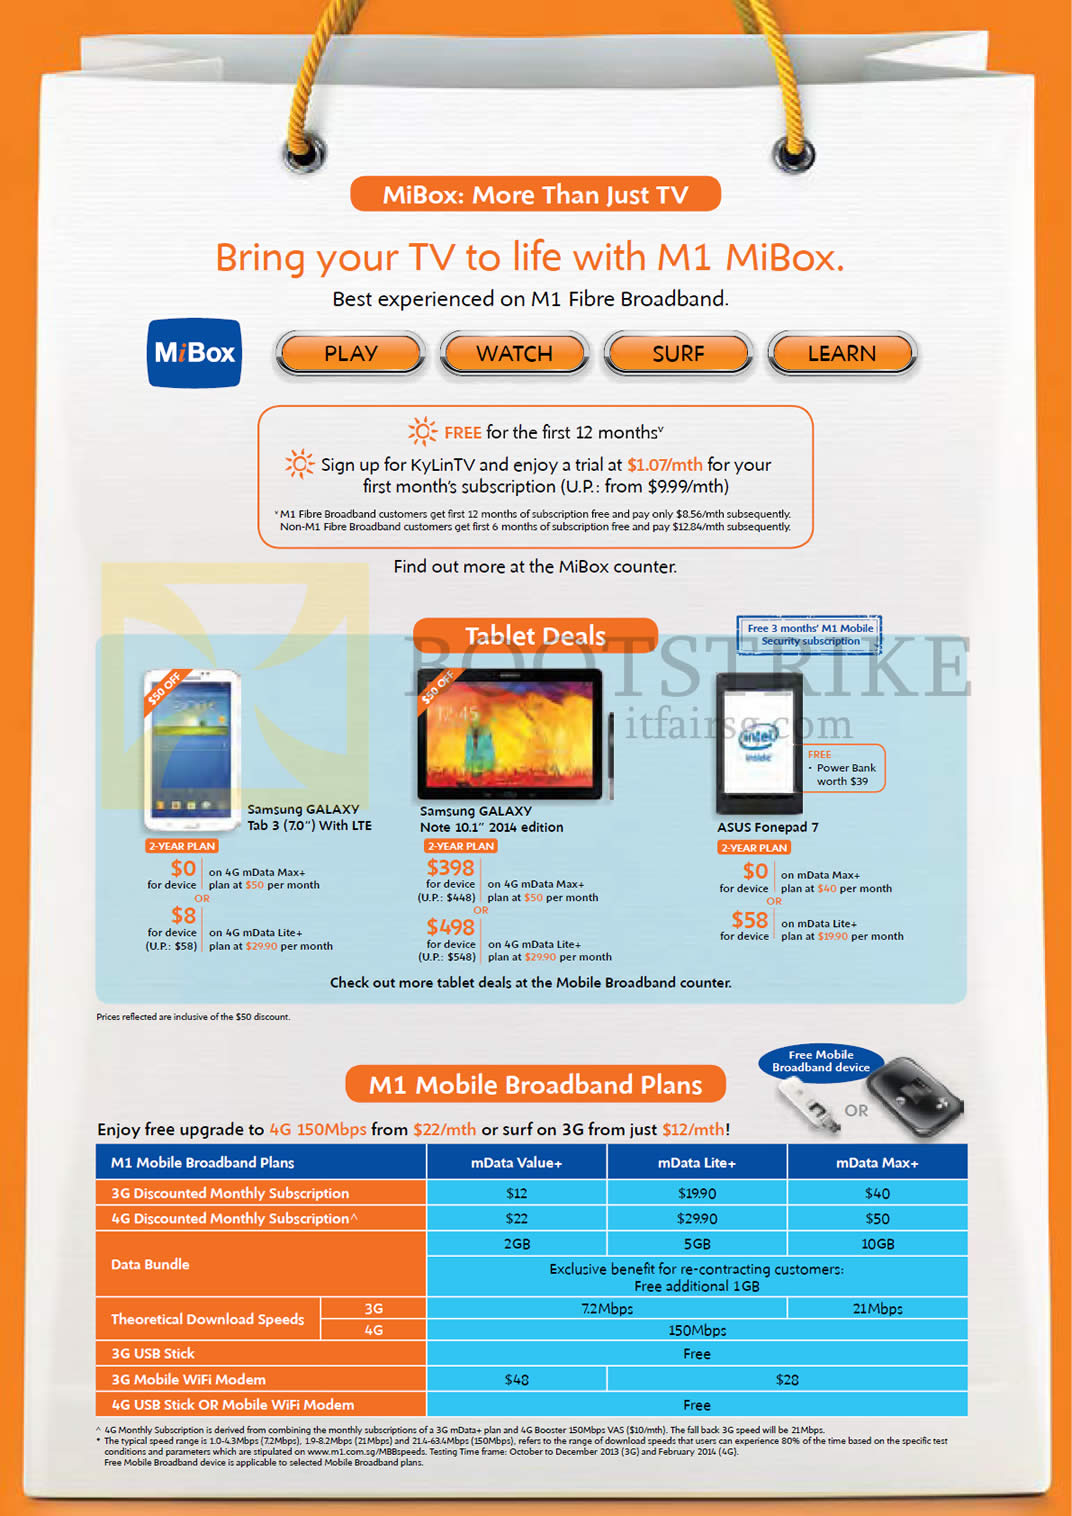 M1 mibox tablets samsung galaxy tab 3 note 10 1 2014 for O tablet price list 2014